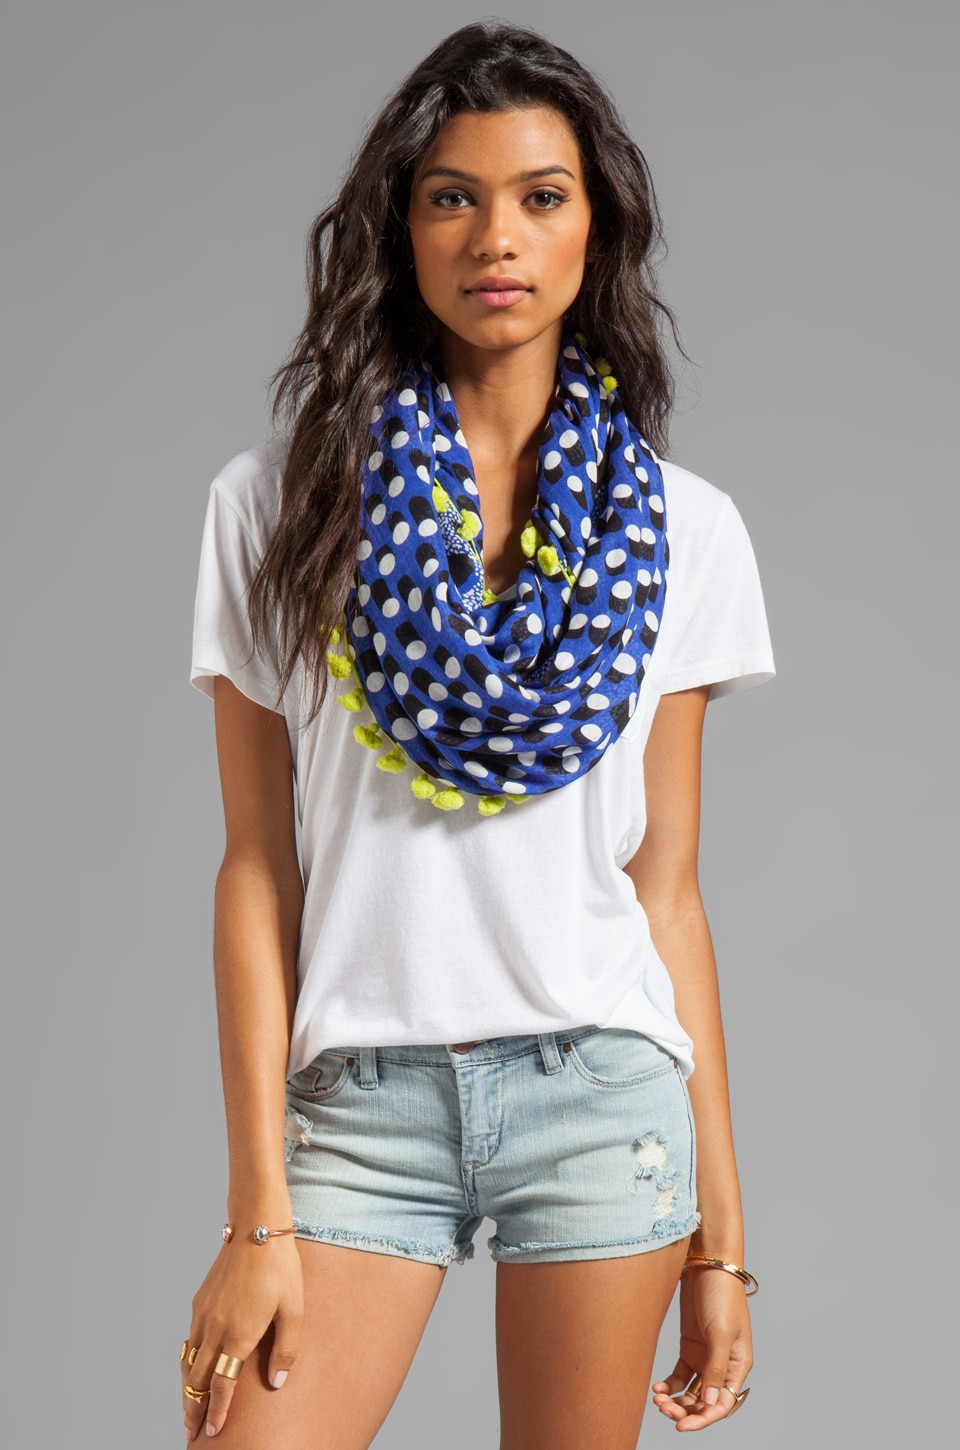 Diane von Furstenberg Circle Scarf in Dot Rush/ Cheetah Island Blue